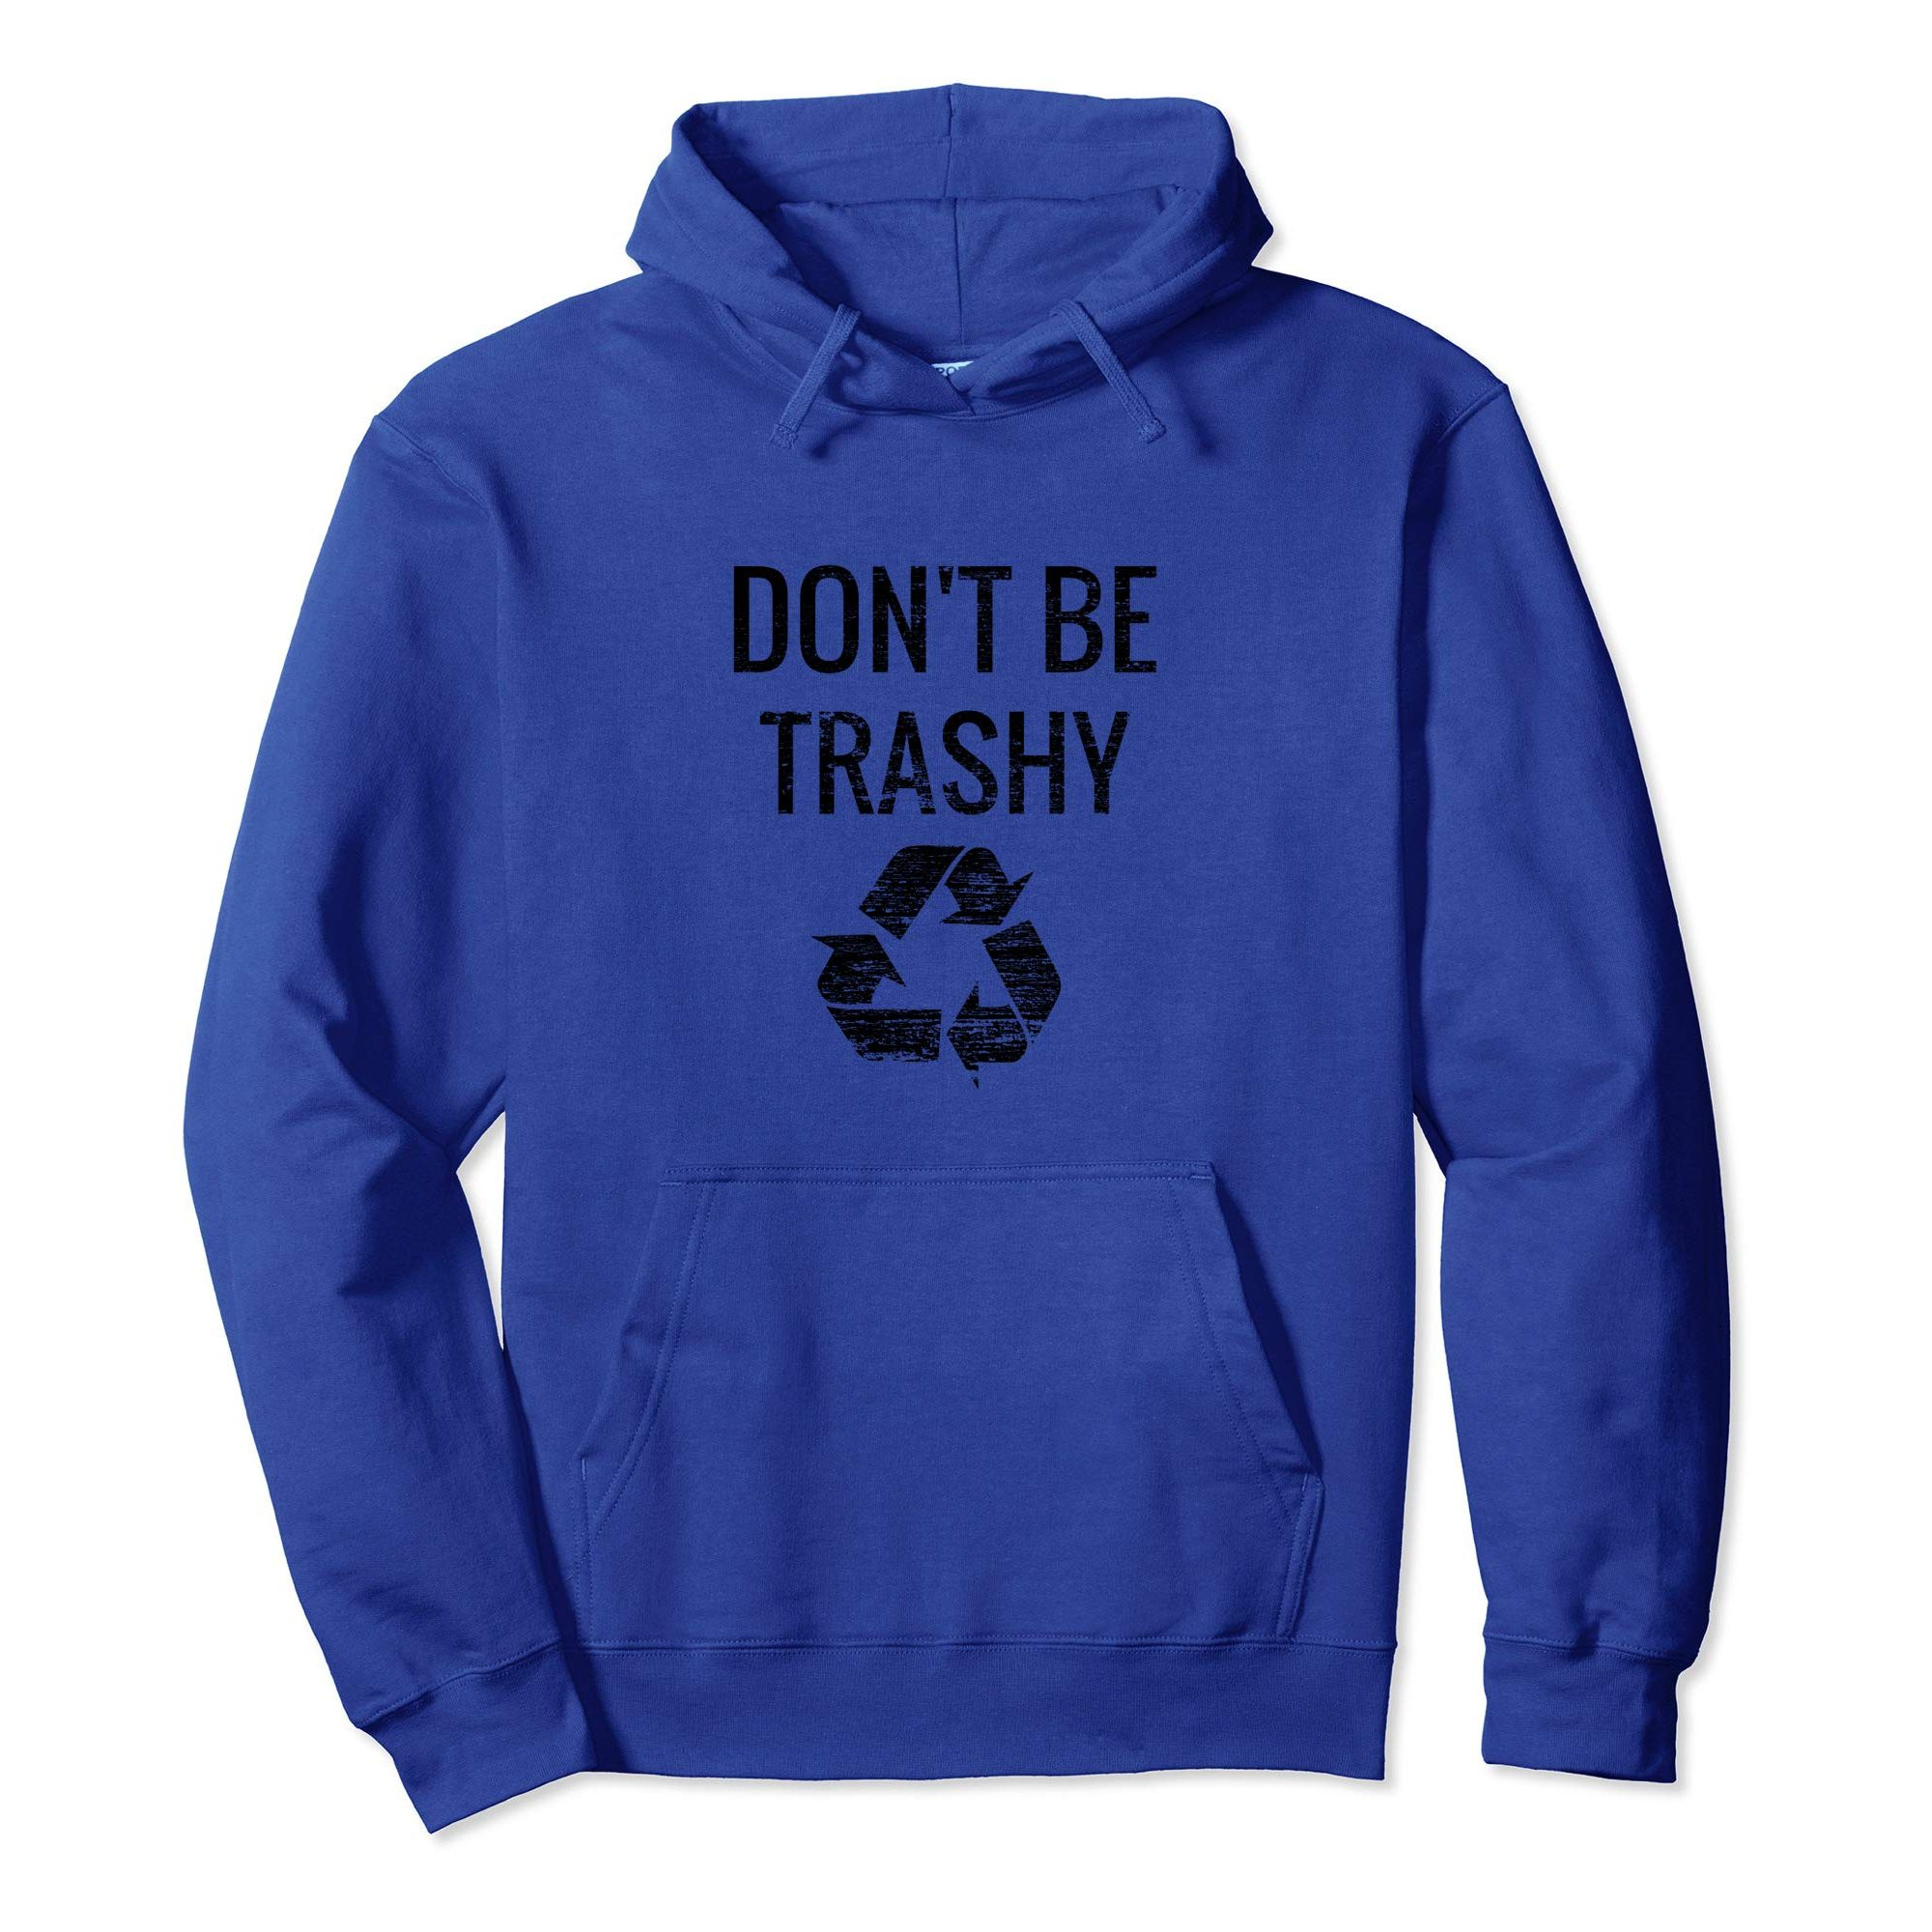 """PULLOVER HOODIE WITH """"DON'T BE TRASHY"""" RECYCLE GRAPHIC"""